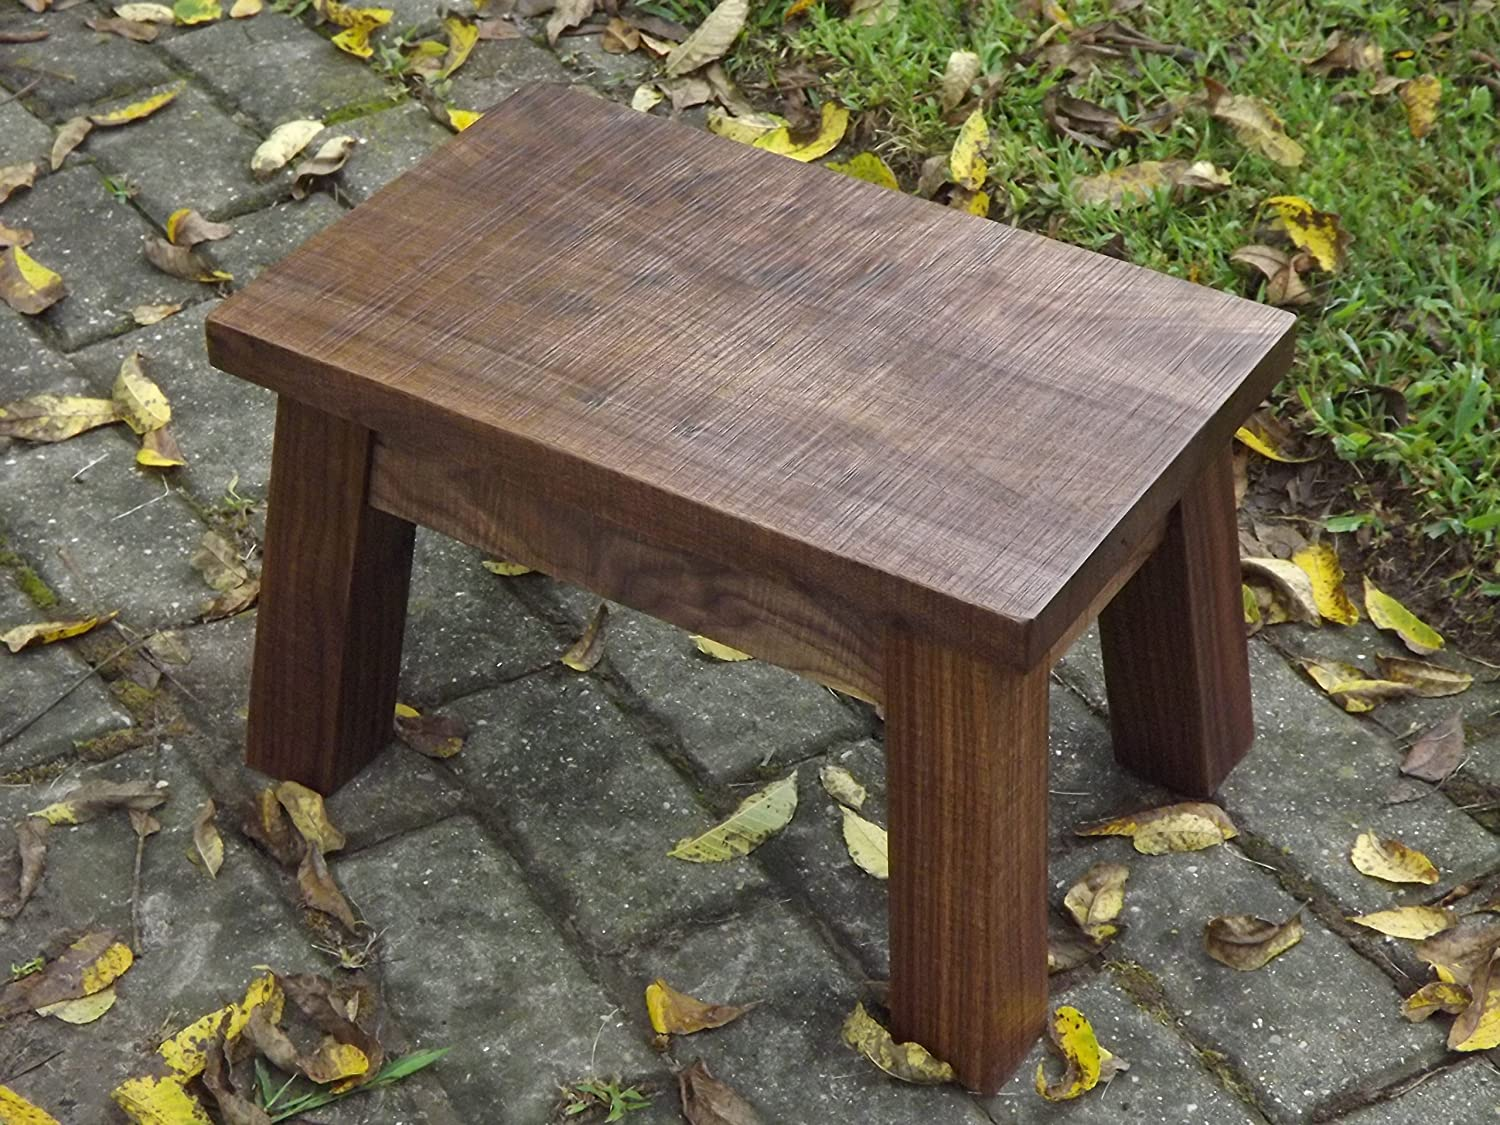 Swell Amazon Com Solid Black Walnut Step Stool Modern Rustic Squirreltailoven Fun Painted Chair Ideas Images Squirreltailovenorg